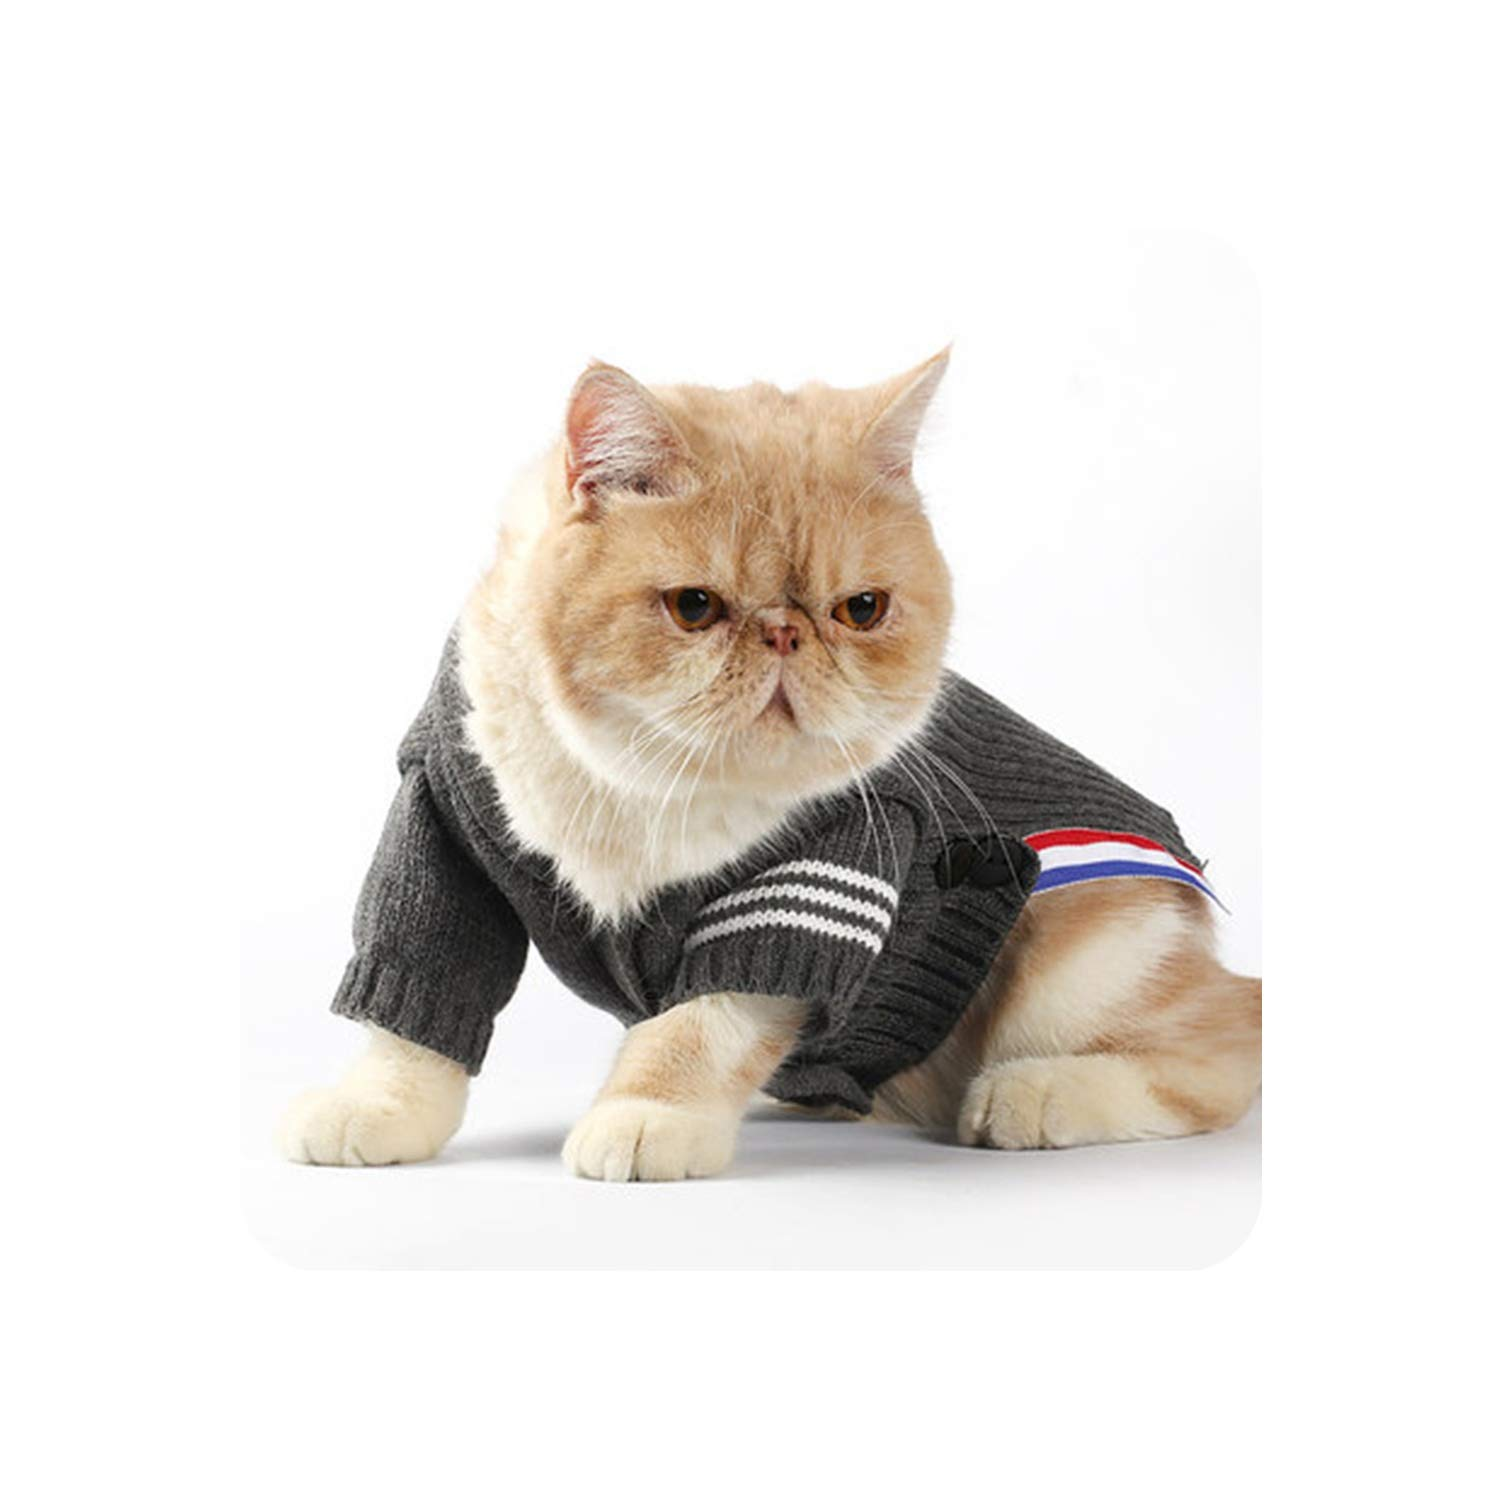 Encounter_meet Sweater for A Cat Pet Costume Clothes Kitten Sweater Cats Clothing for Pets Dresses Sweaters,Gray,L